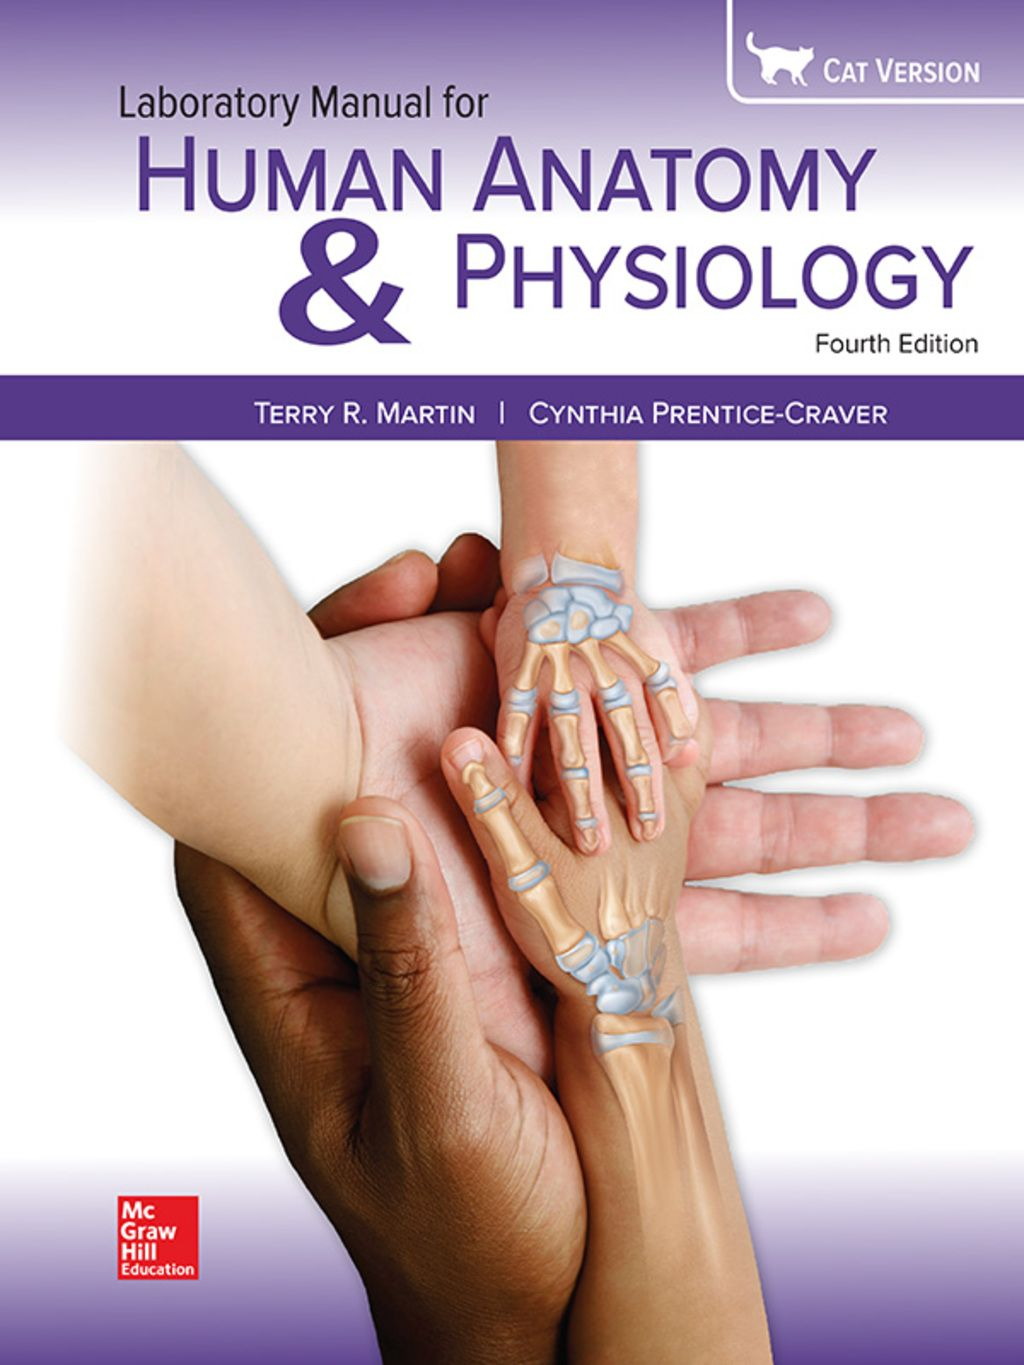 Laboratory Manual for Human Anatomy & Physiology Cat